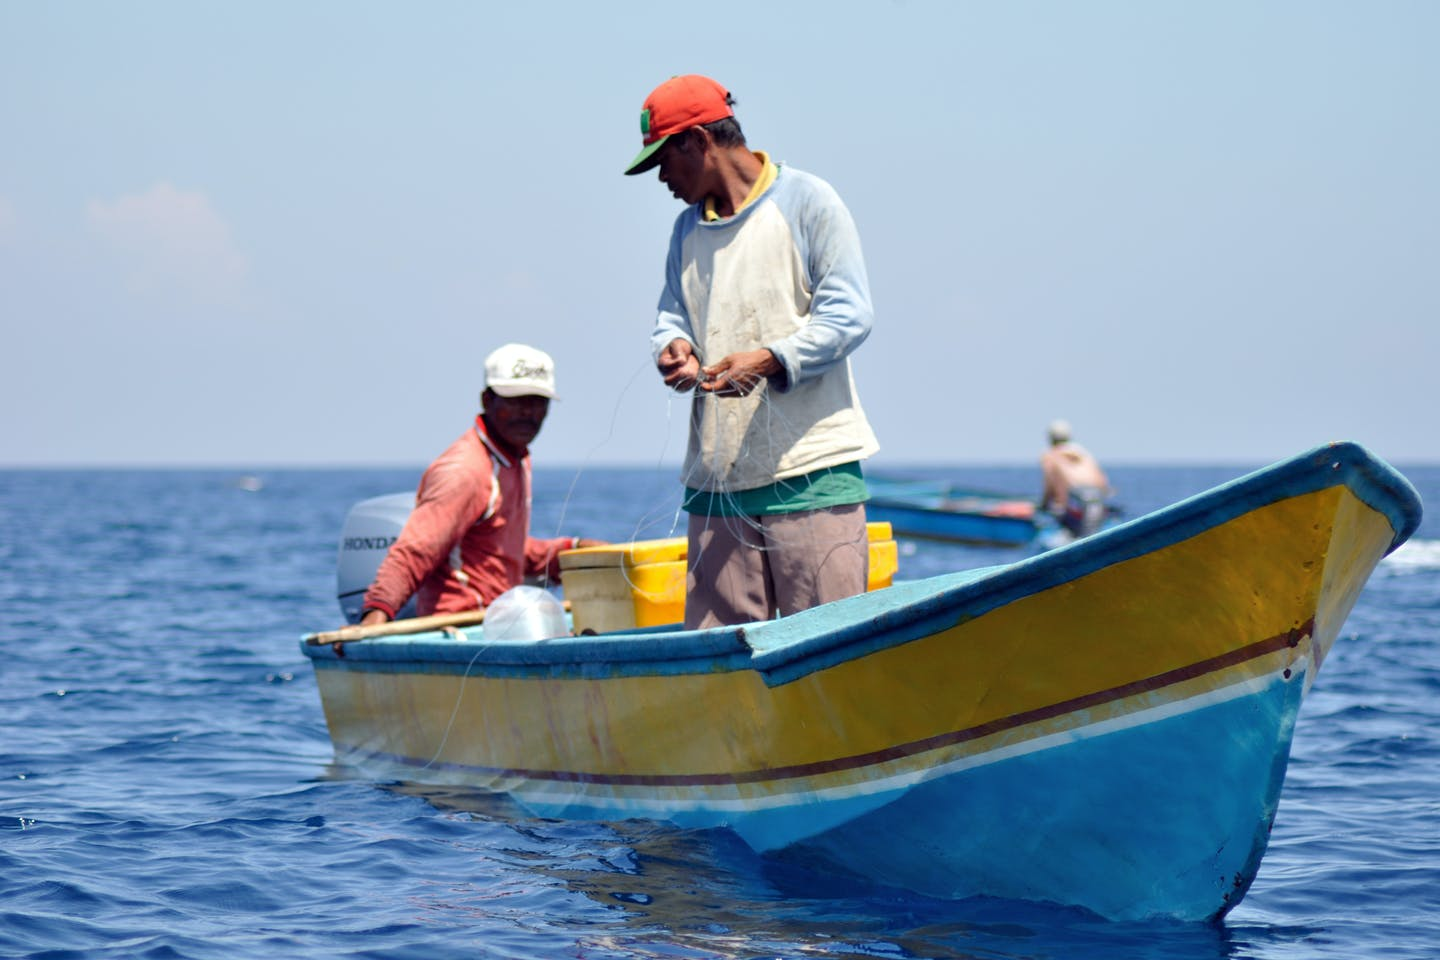 FairTrade tuna fishery in Indonesia achieves certificate for sustainability